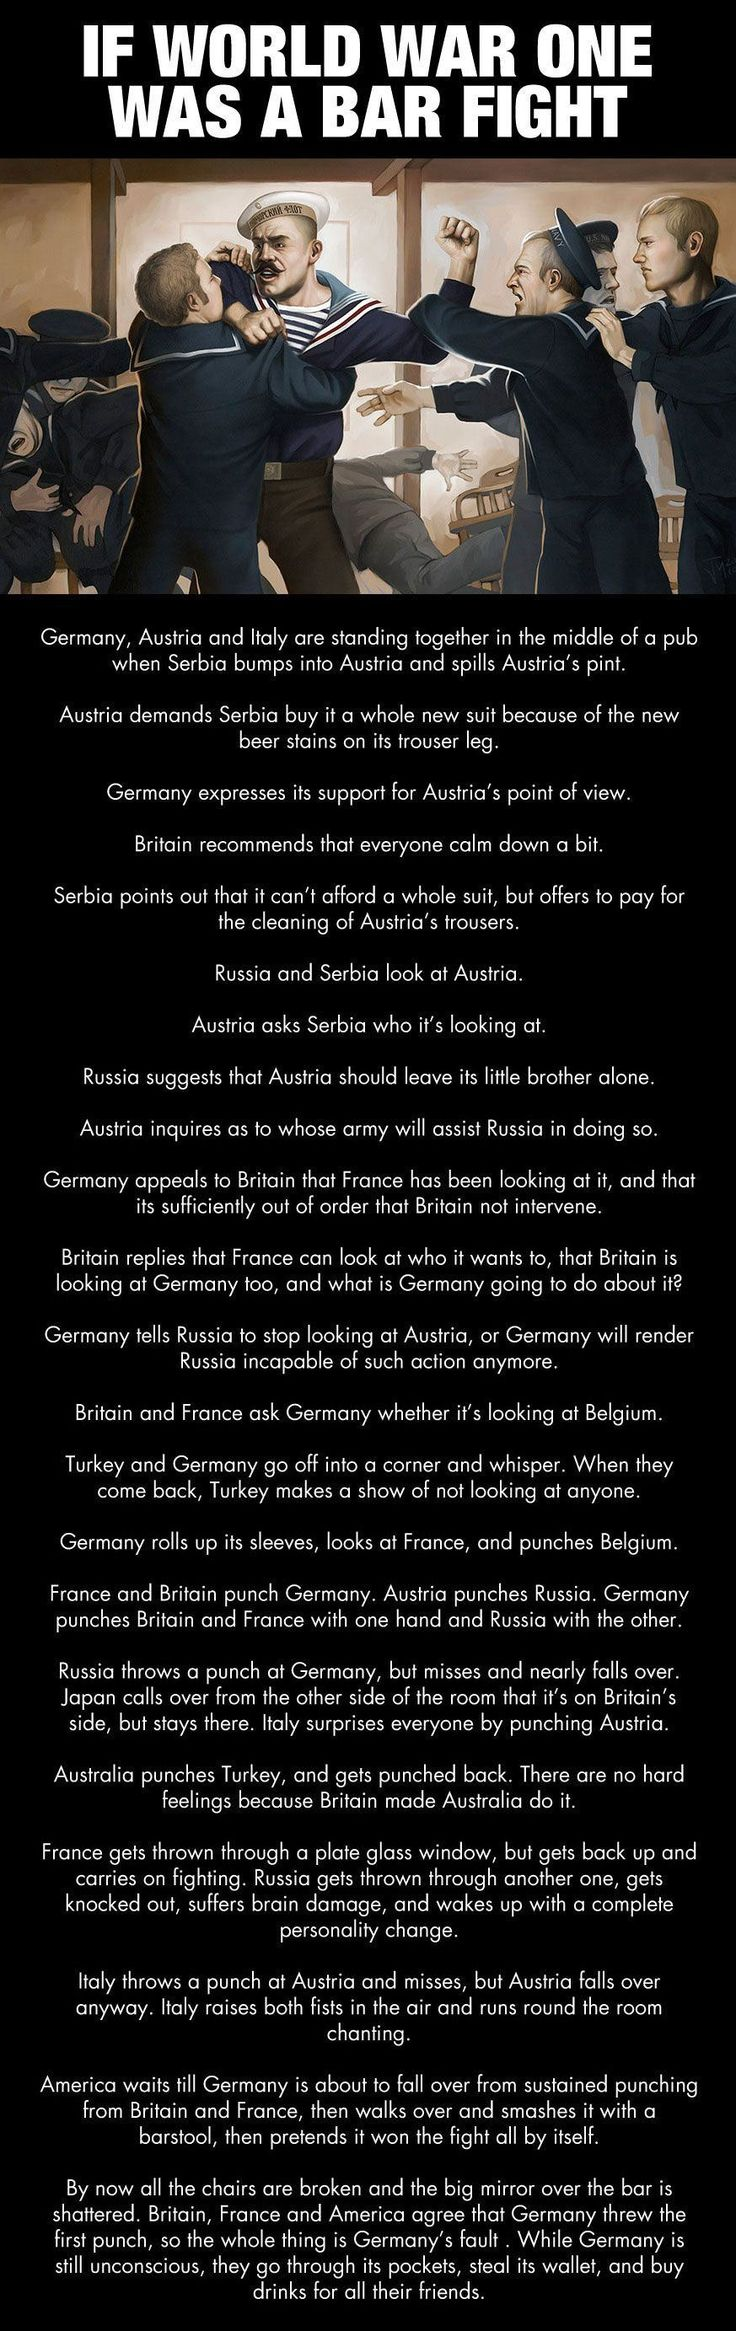 If World War 1 was a bar fight...